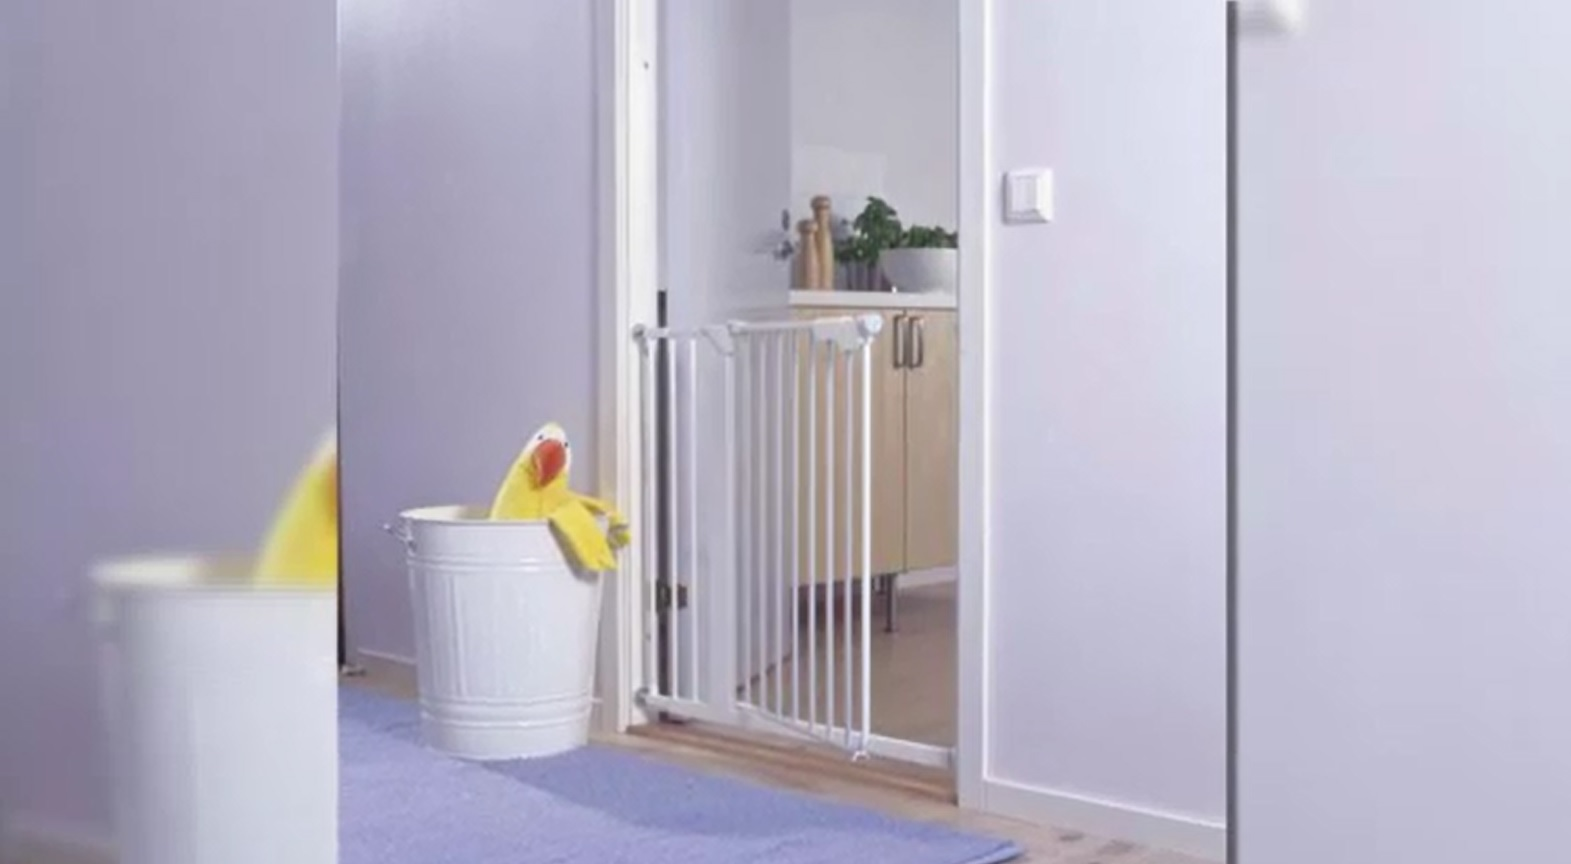 Ikea Patrull Klamma Baby Gate ~ IKEA recalls baby gates due to malfunction in locking mechanism